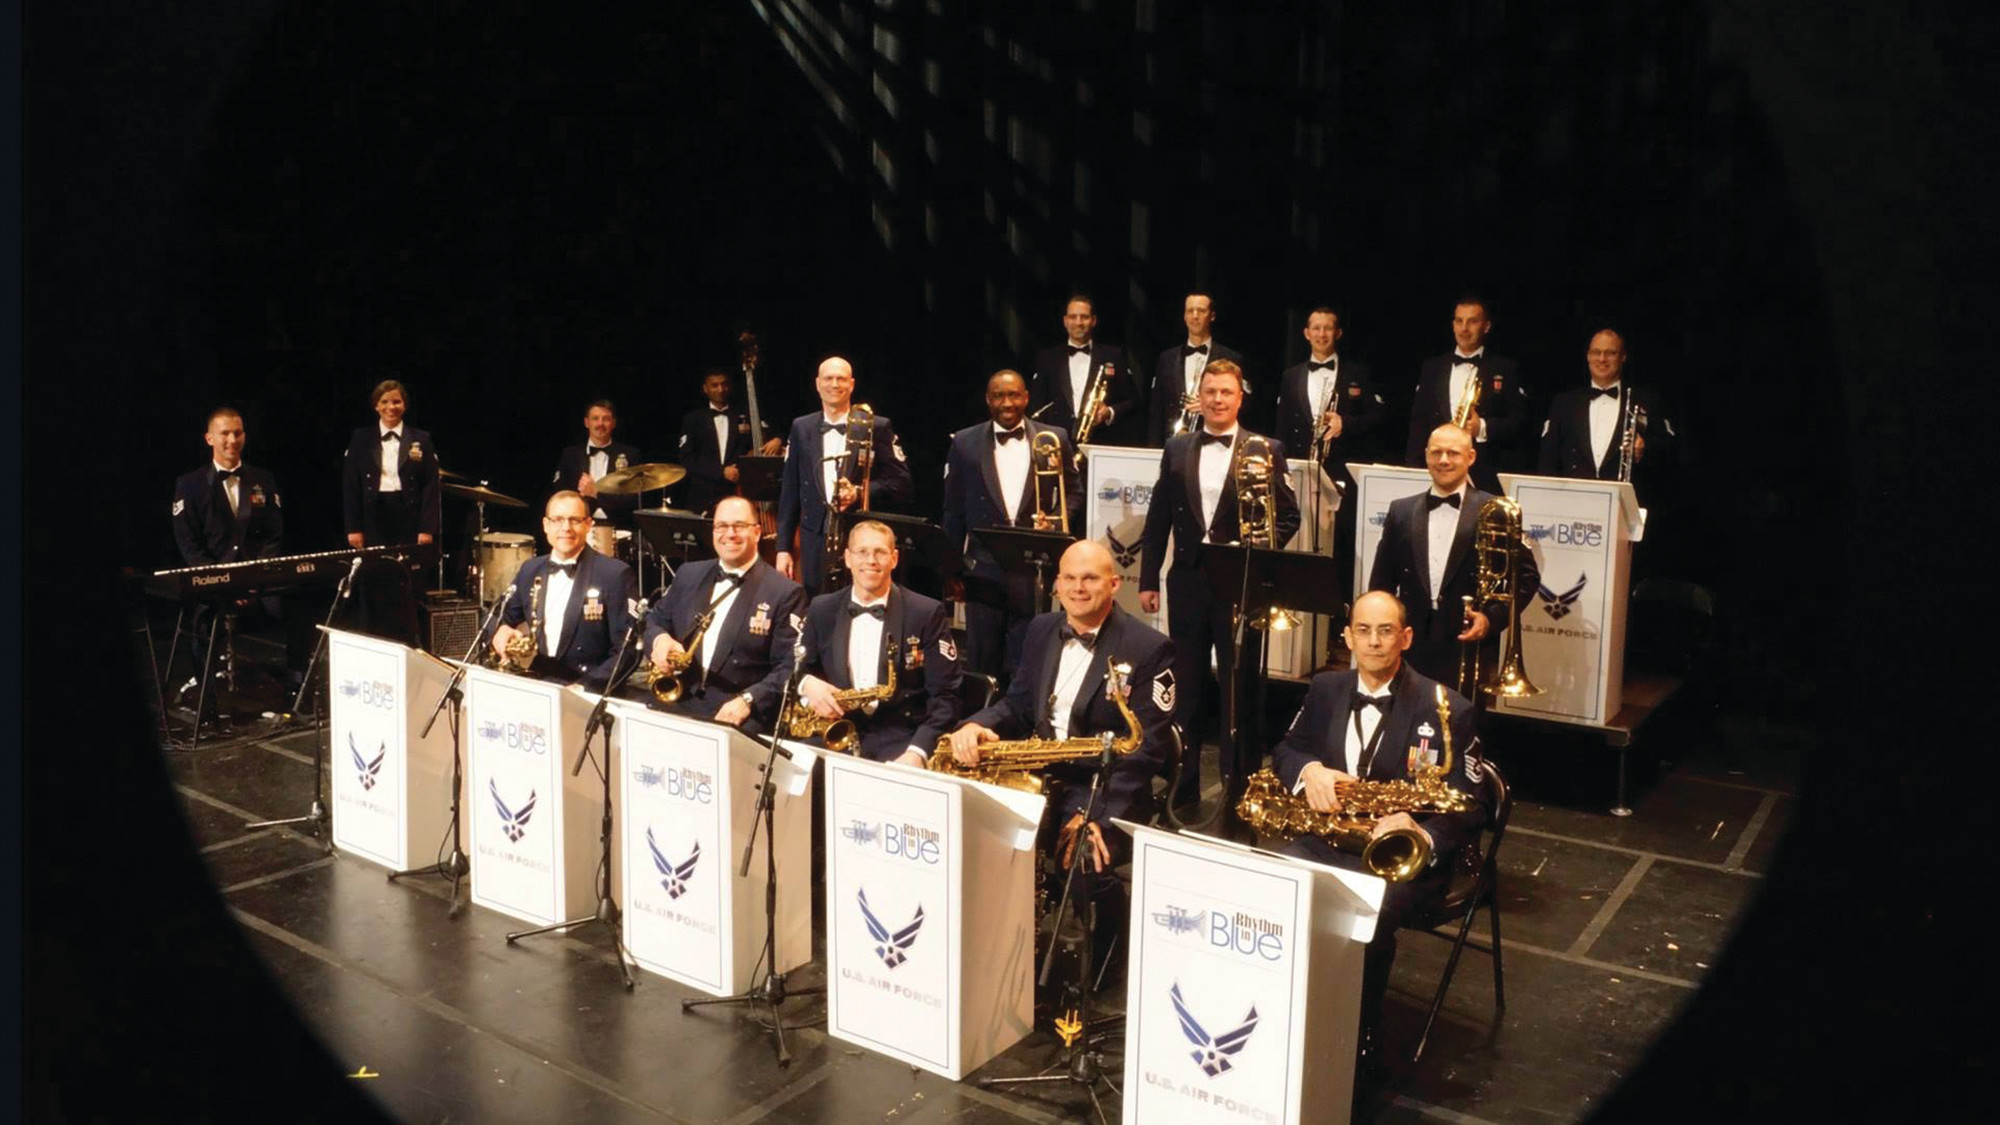 PHOTOS PROVIDEDU.S. Air Force Rhythm in Blue will close out the inaugural Love, Respect, Unity Arts Festival sponsored by the Sumter County Cultural Commission and the Arthenia Jackson Bates Millican Foundation on Sunday afternoon at Patriot Hall.